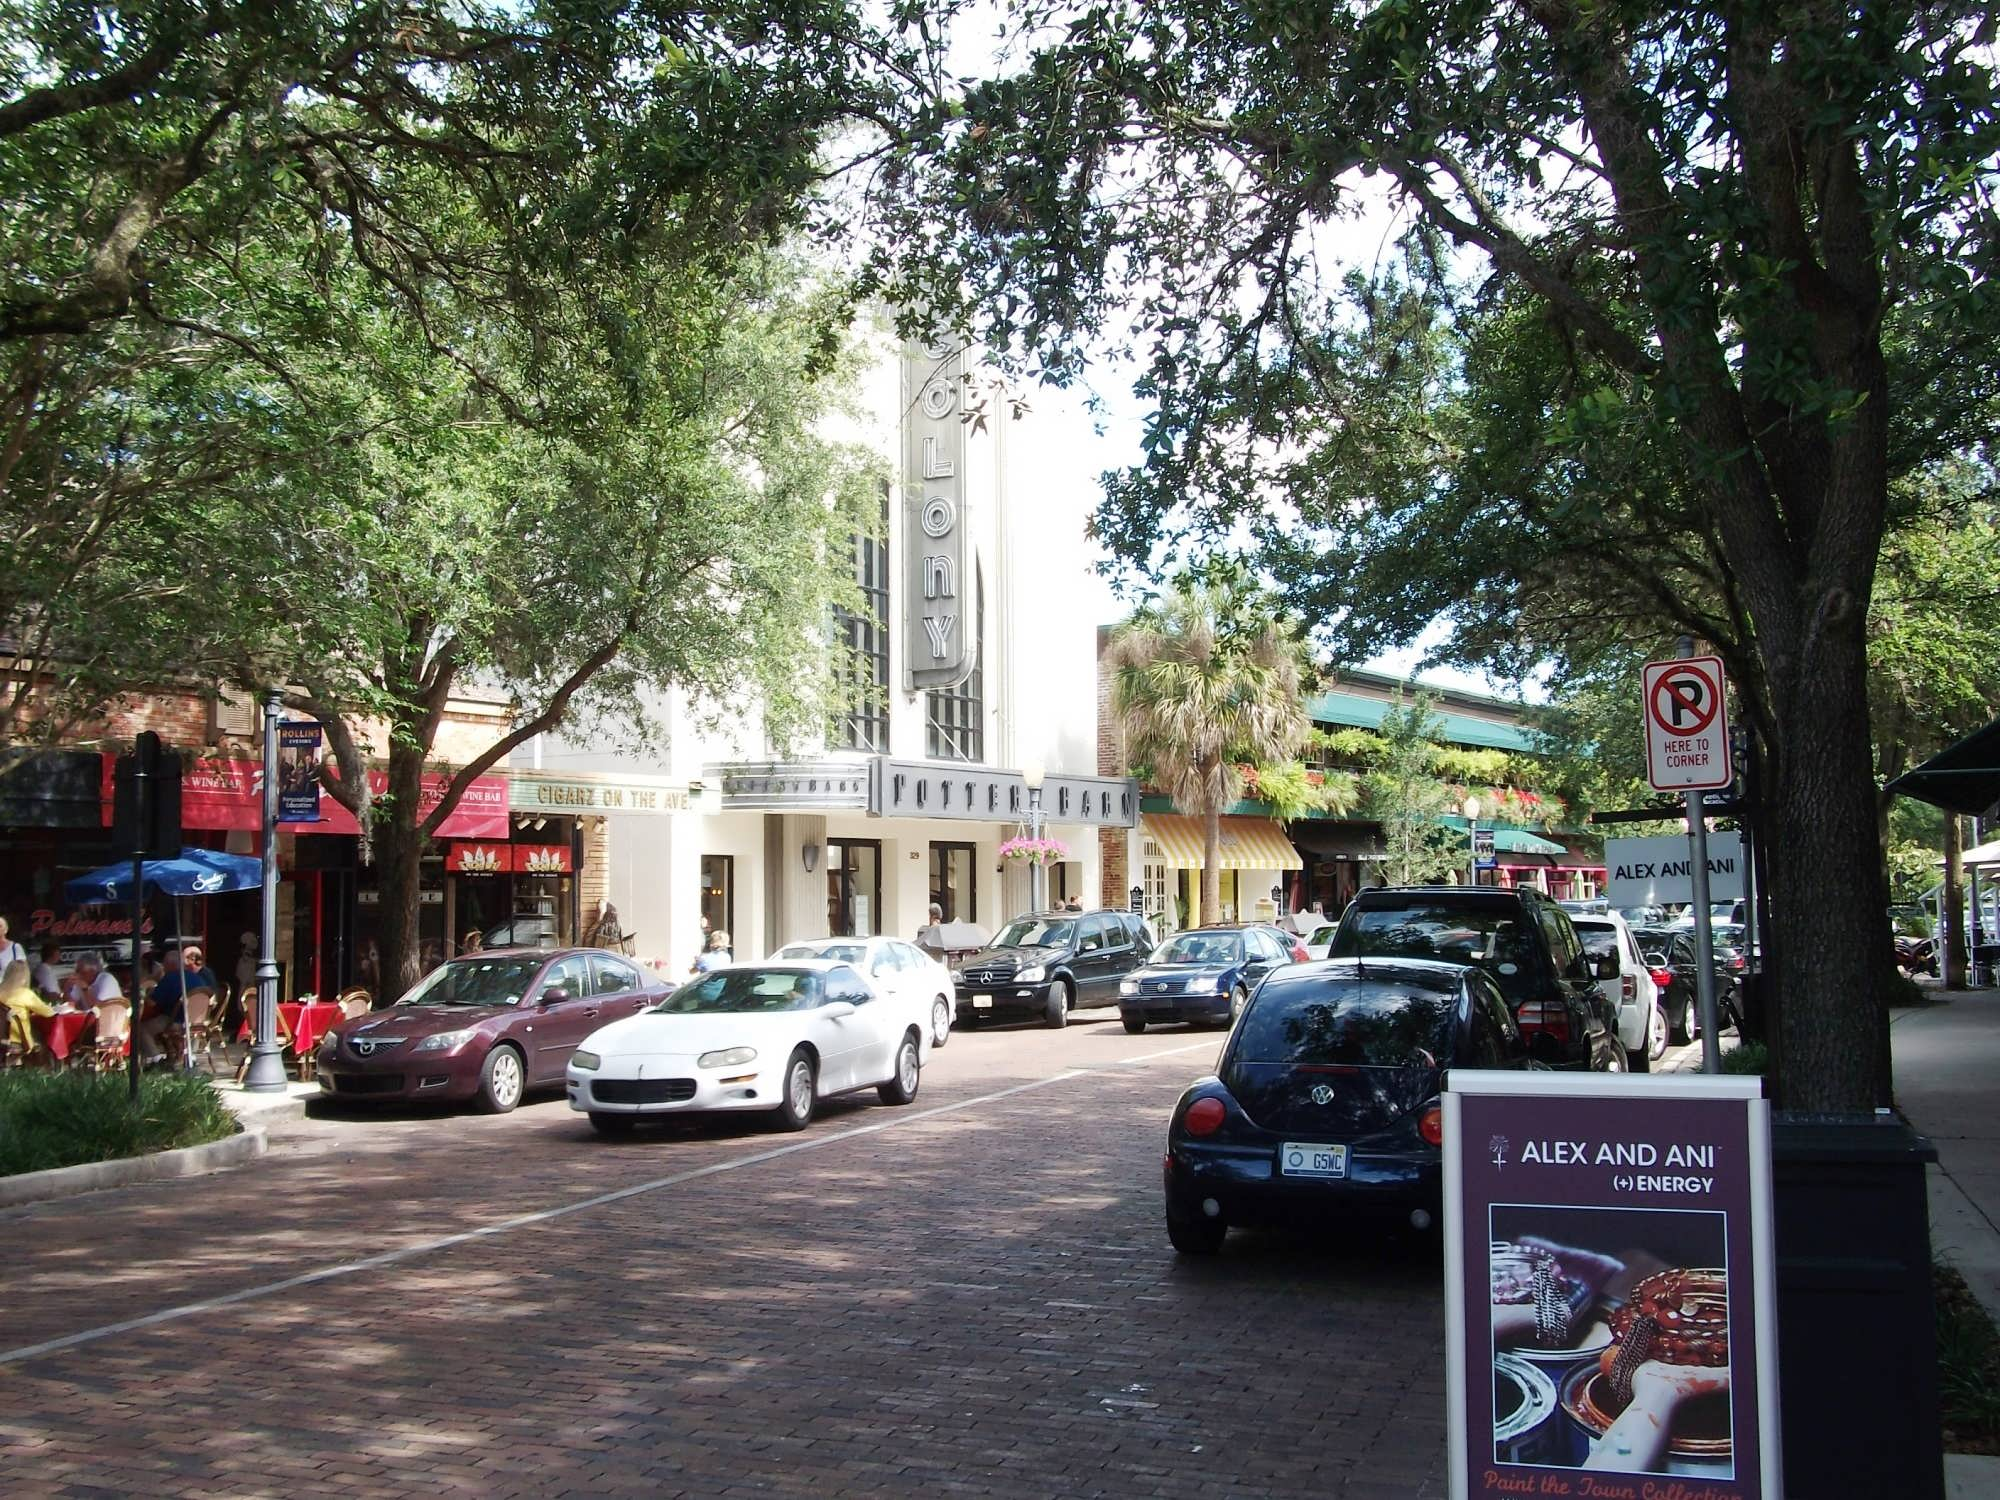 In Winter Park you will find more than 70 parks, all home to various events, festivals and celebrations throughout the year – and available to anyone looking for a place to sit in the shade and enjoy a beautiful Central Florida afternoon.